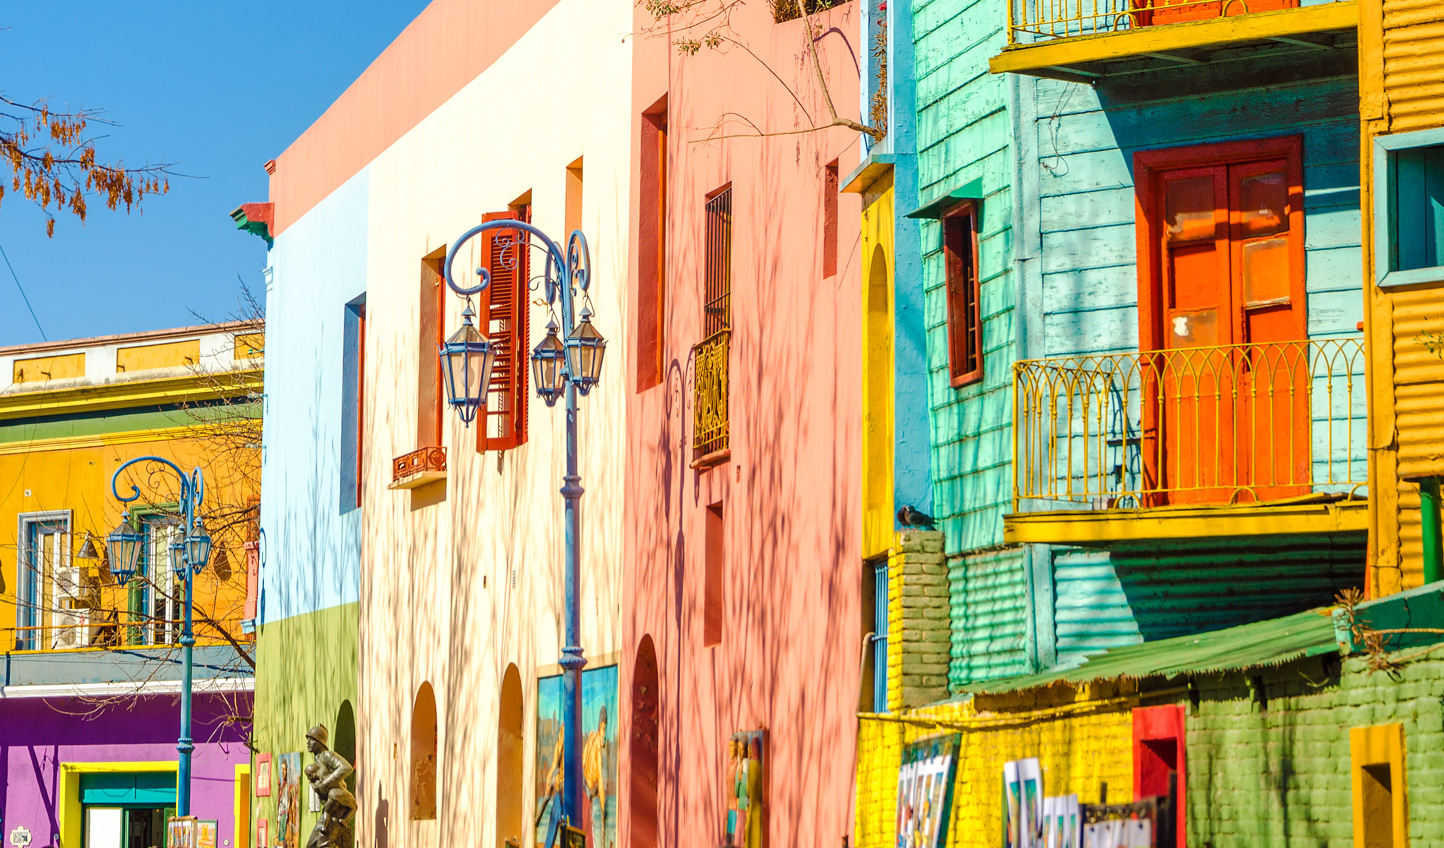 Stroll down the colourful streets of La Boca